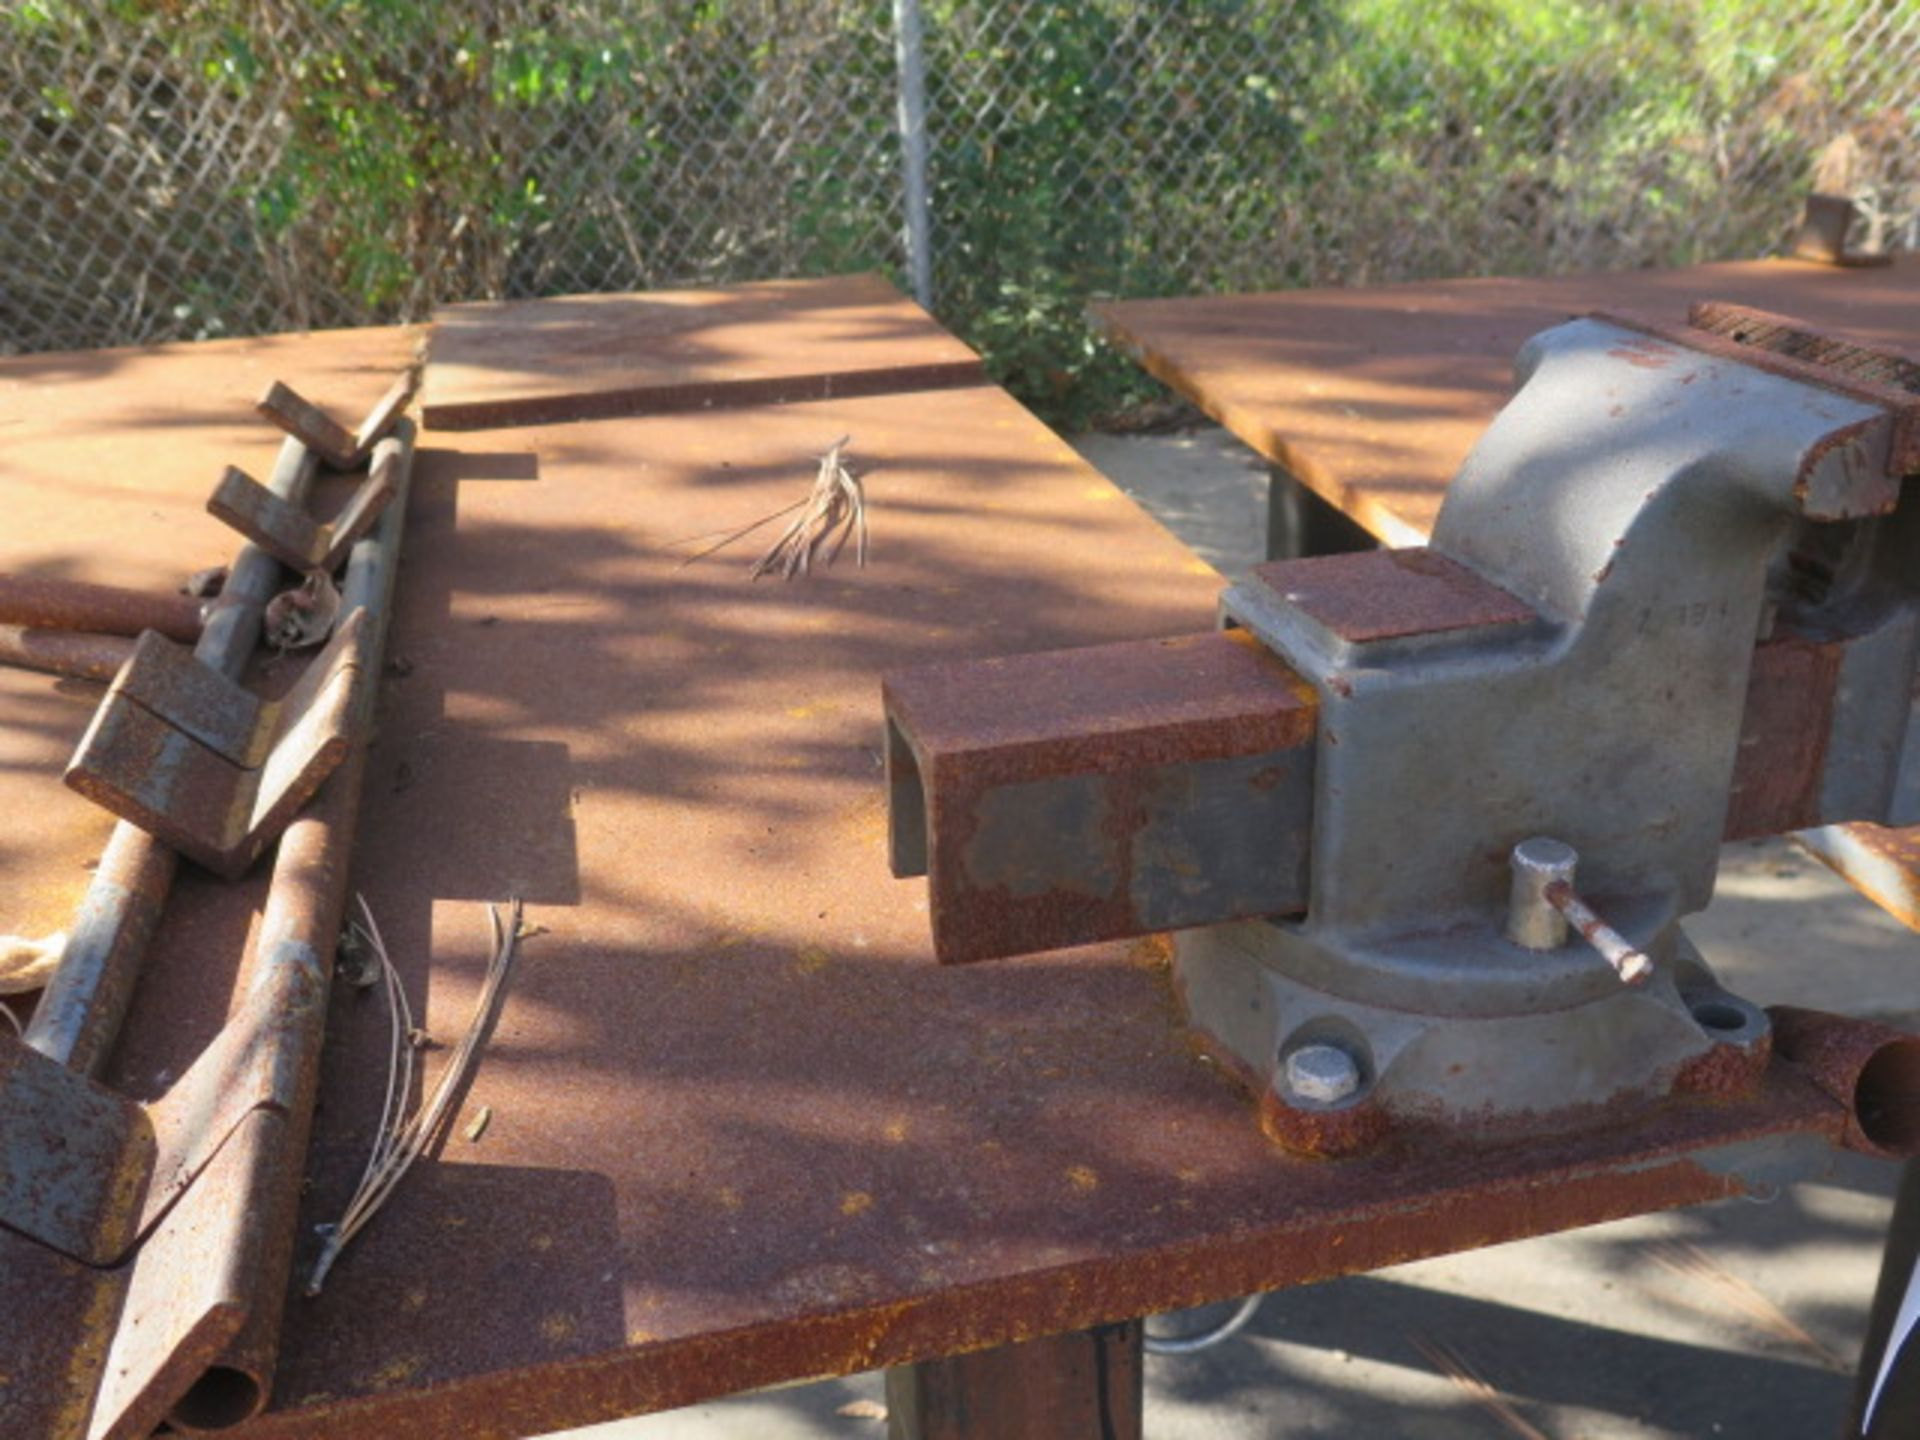 """5' x 5' x 1"""" Steel Welding Table w/ Wilton 6"""" Bench Vise (SOLD AS-IS - NO WARRANTY) - Image 3 of 8"""